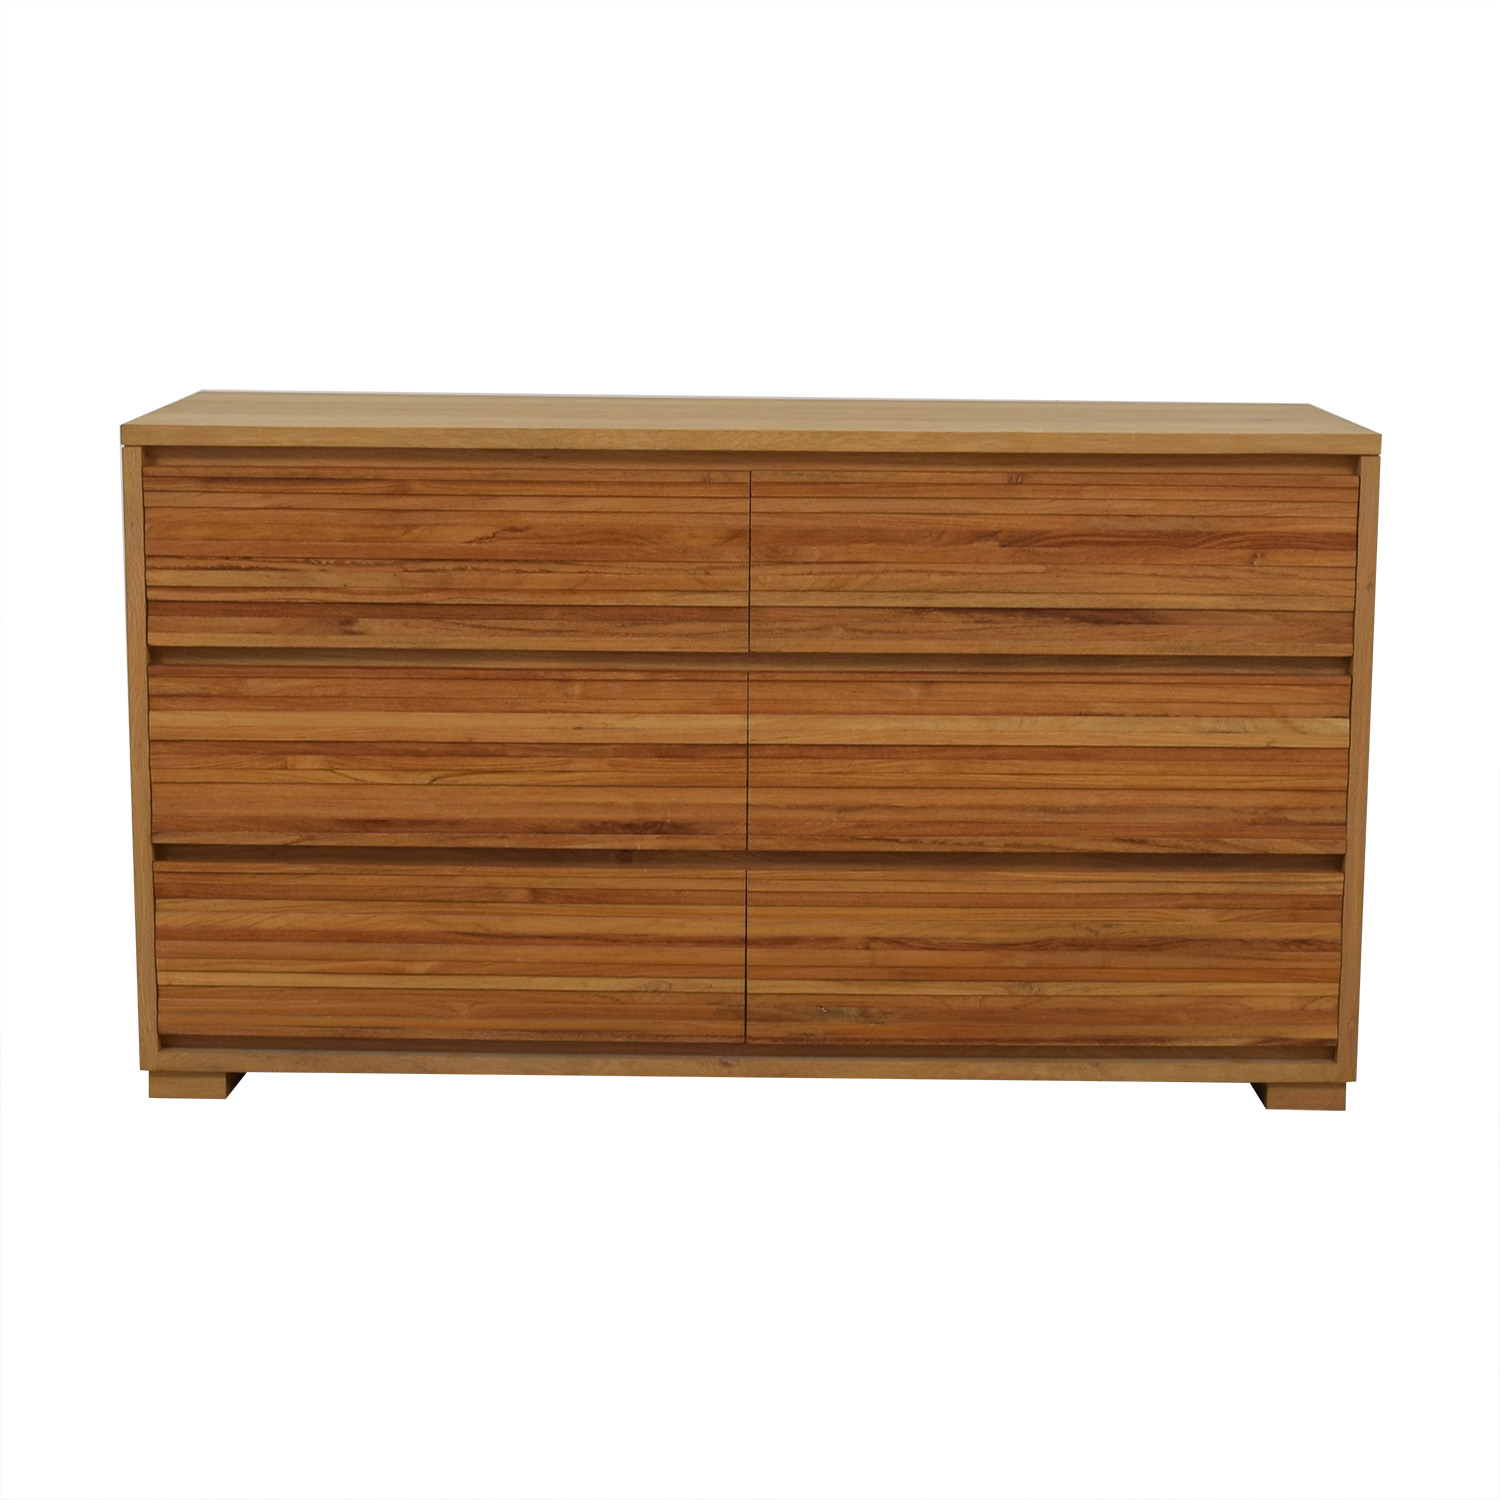 shop Crate & Barrel Crate & Barrel Sierra Six-Drawer Dresser online